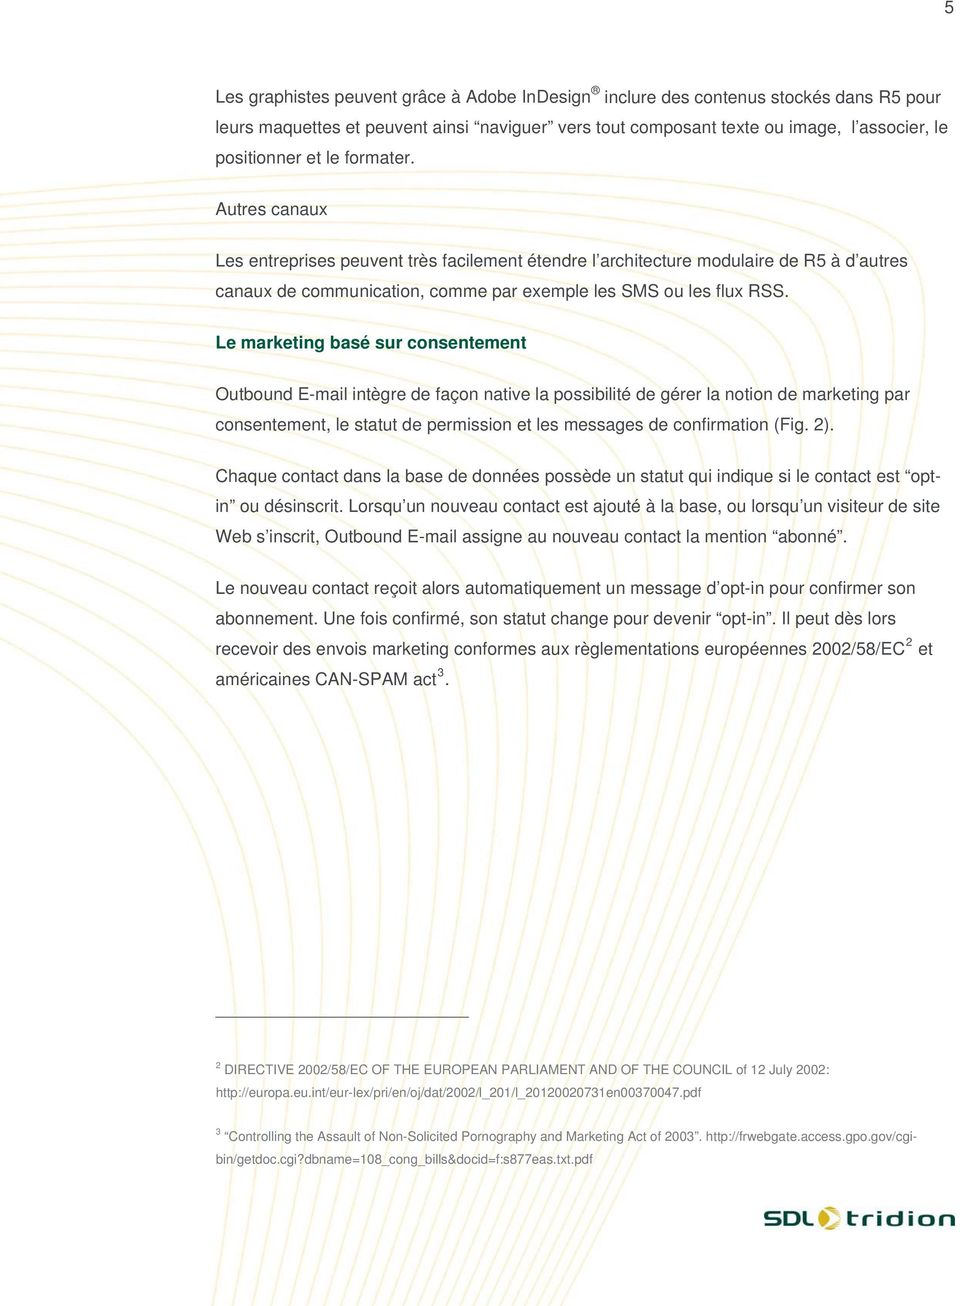 Le marketing basé sur consentement Outbound E-mail intègre de façon native la possibilité de gérer la notion de marketing par consentement, le statut de permission et les messages de confirmation